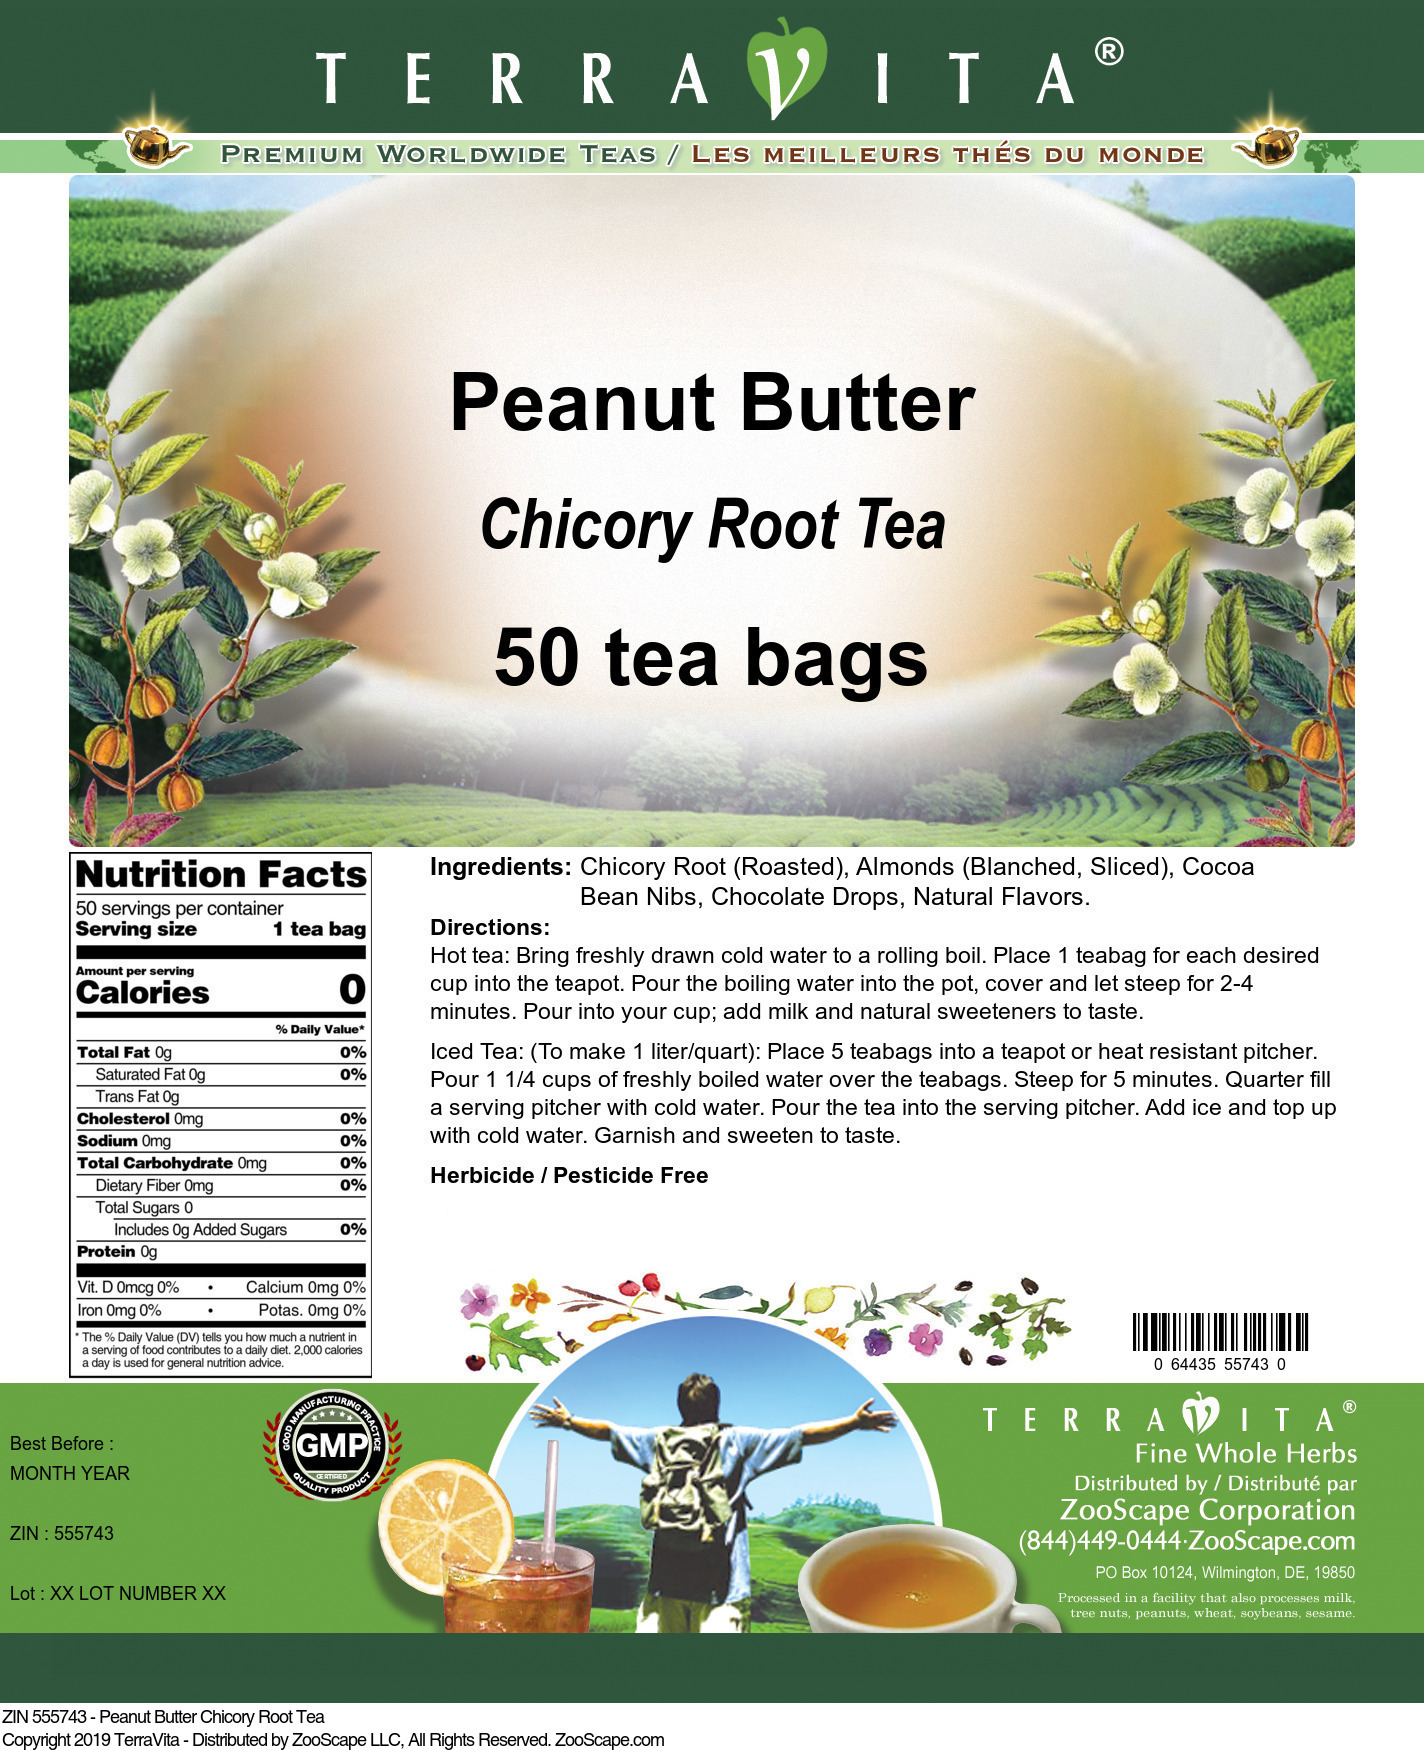 Peanut Butter Chicory Root Tea